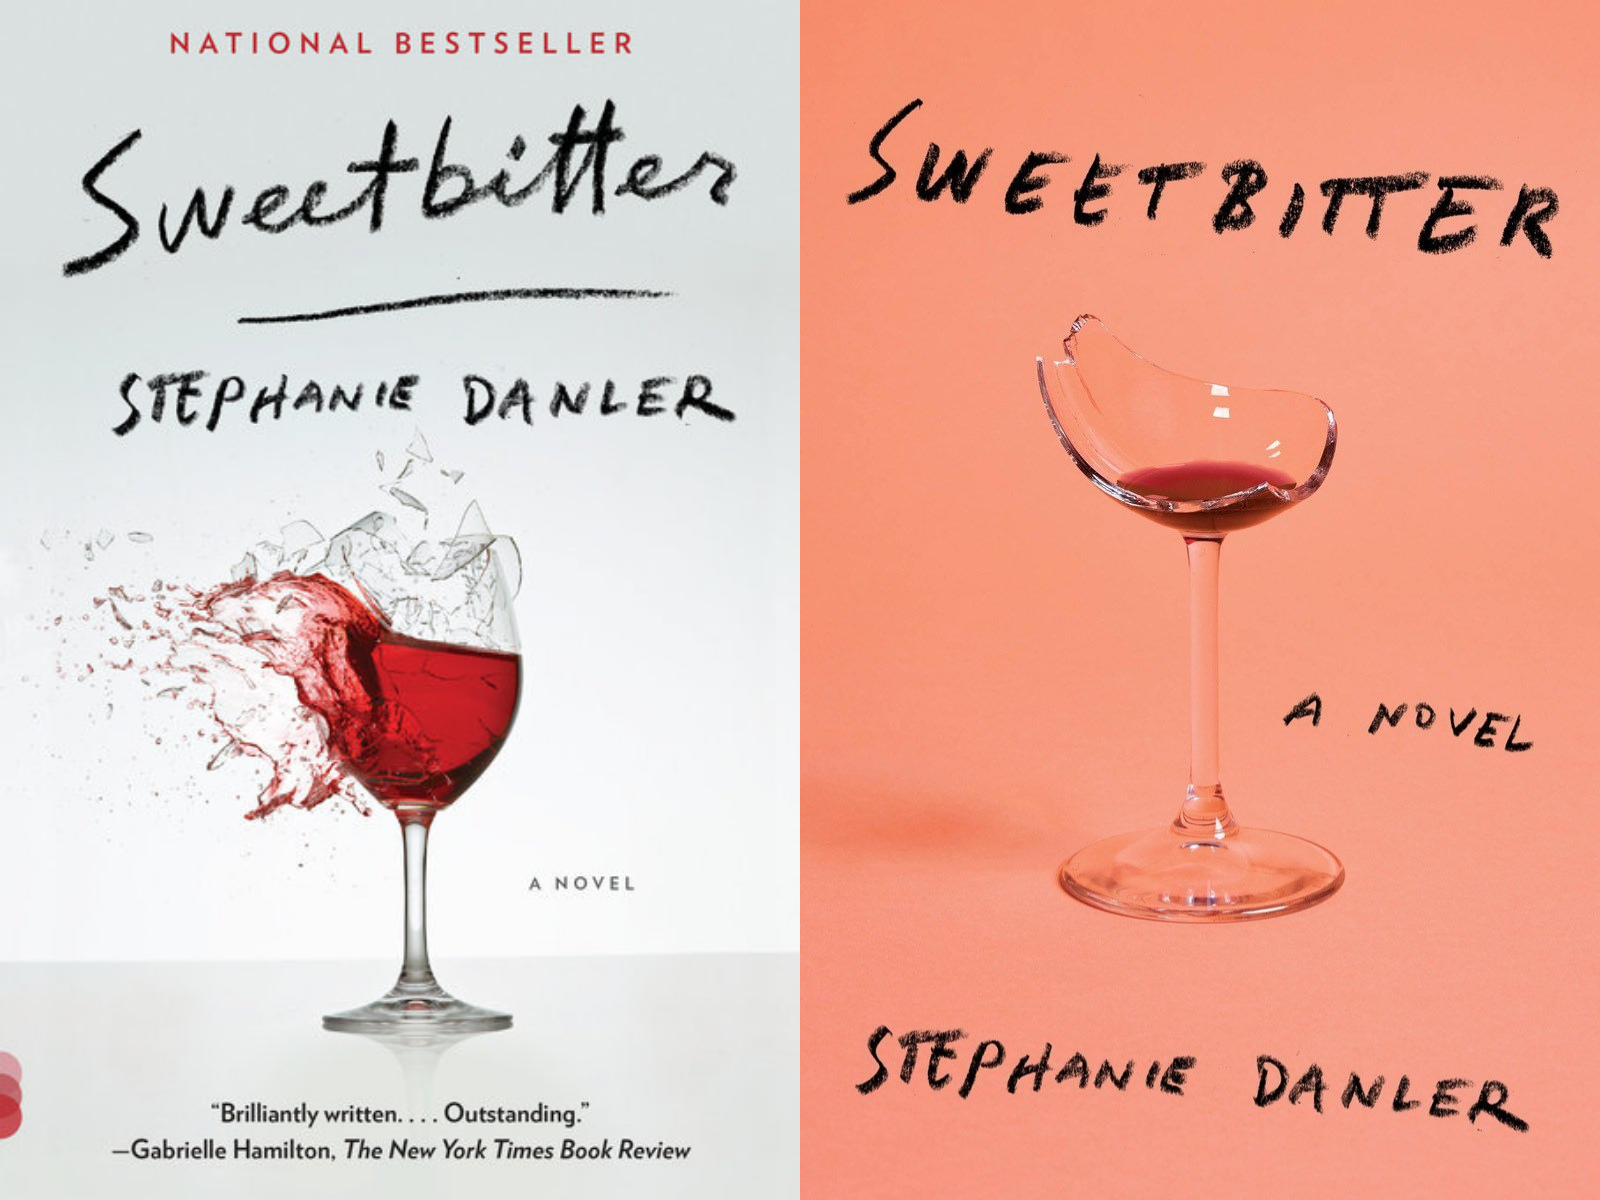 Paperback and hardcover editions of Sweetbitter by Stephanie Danler